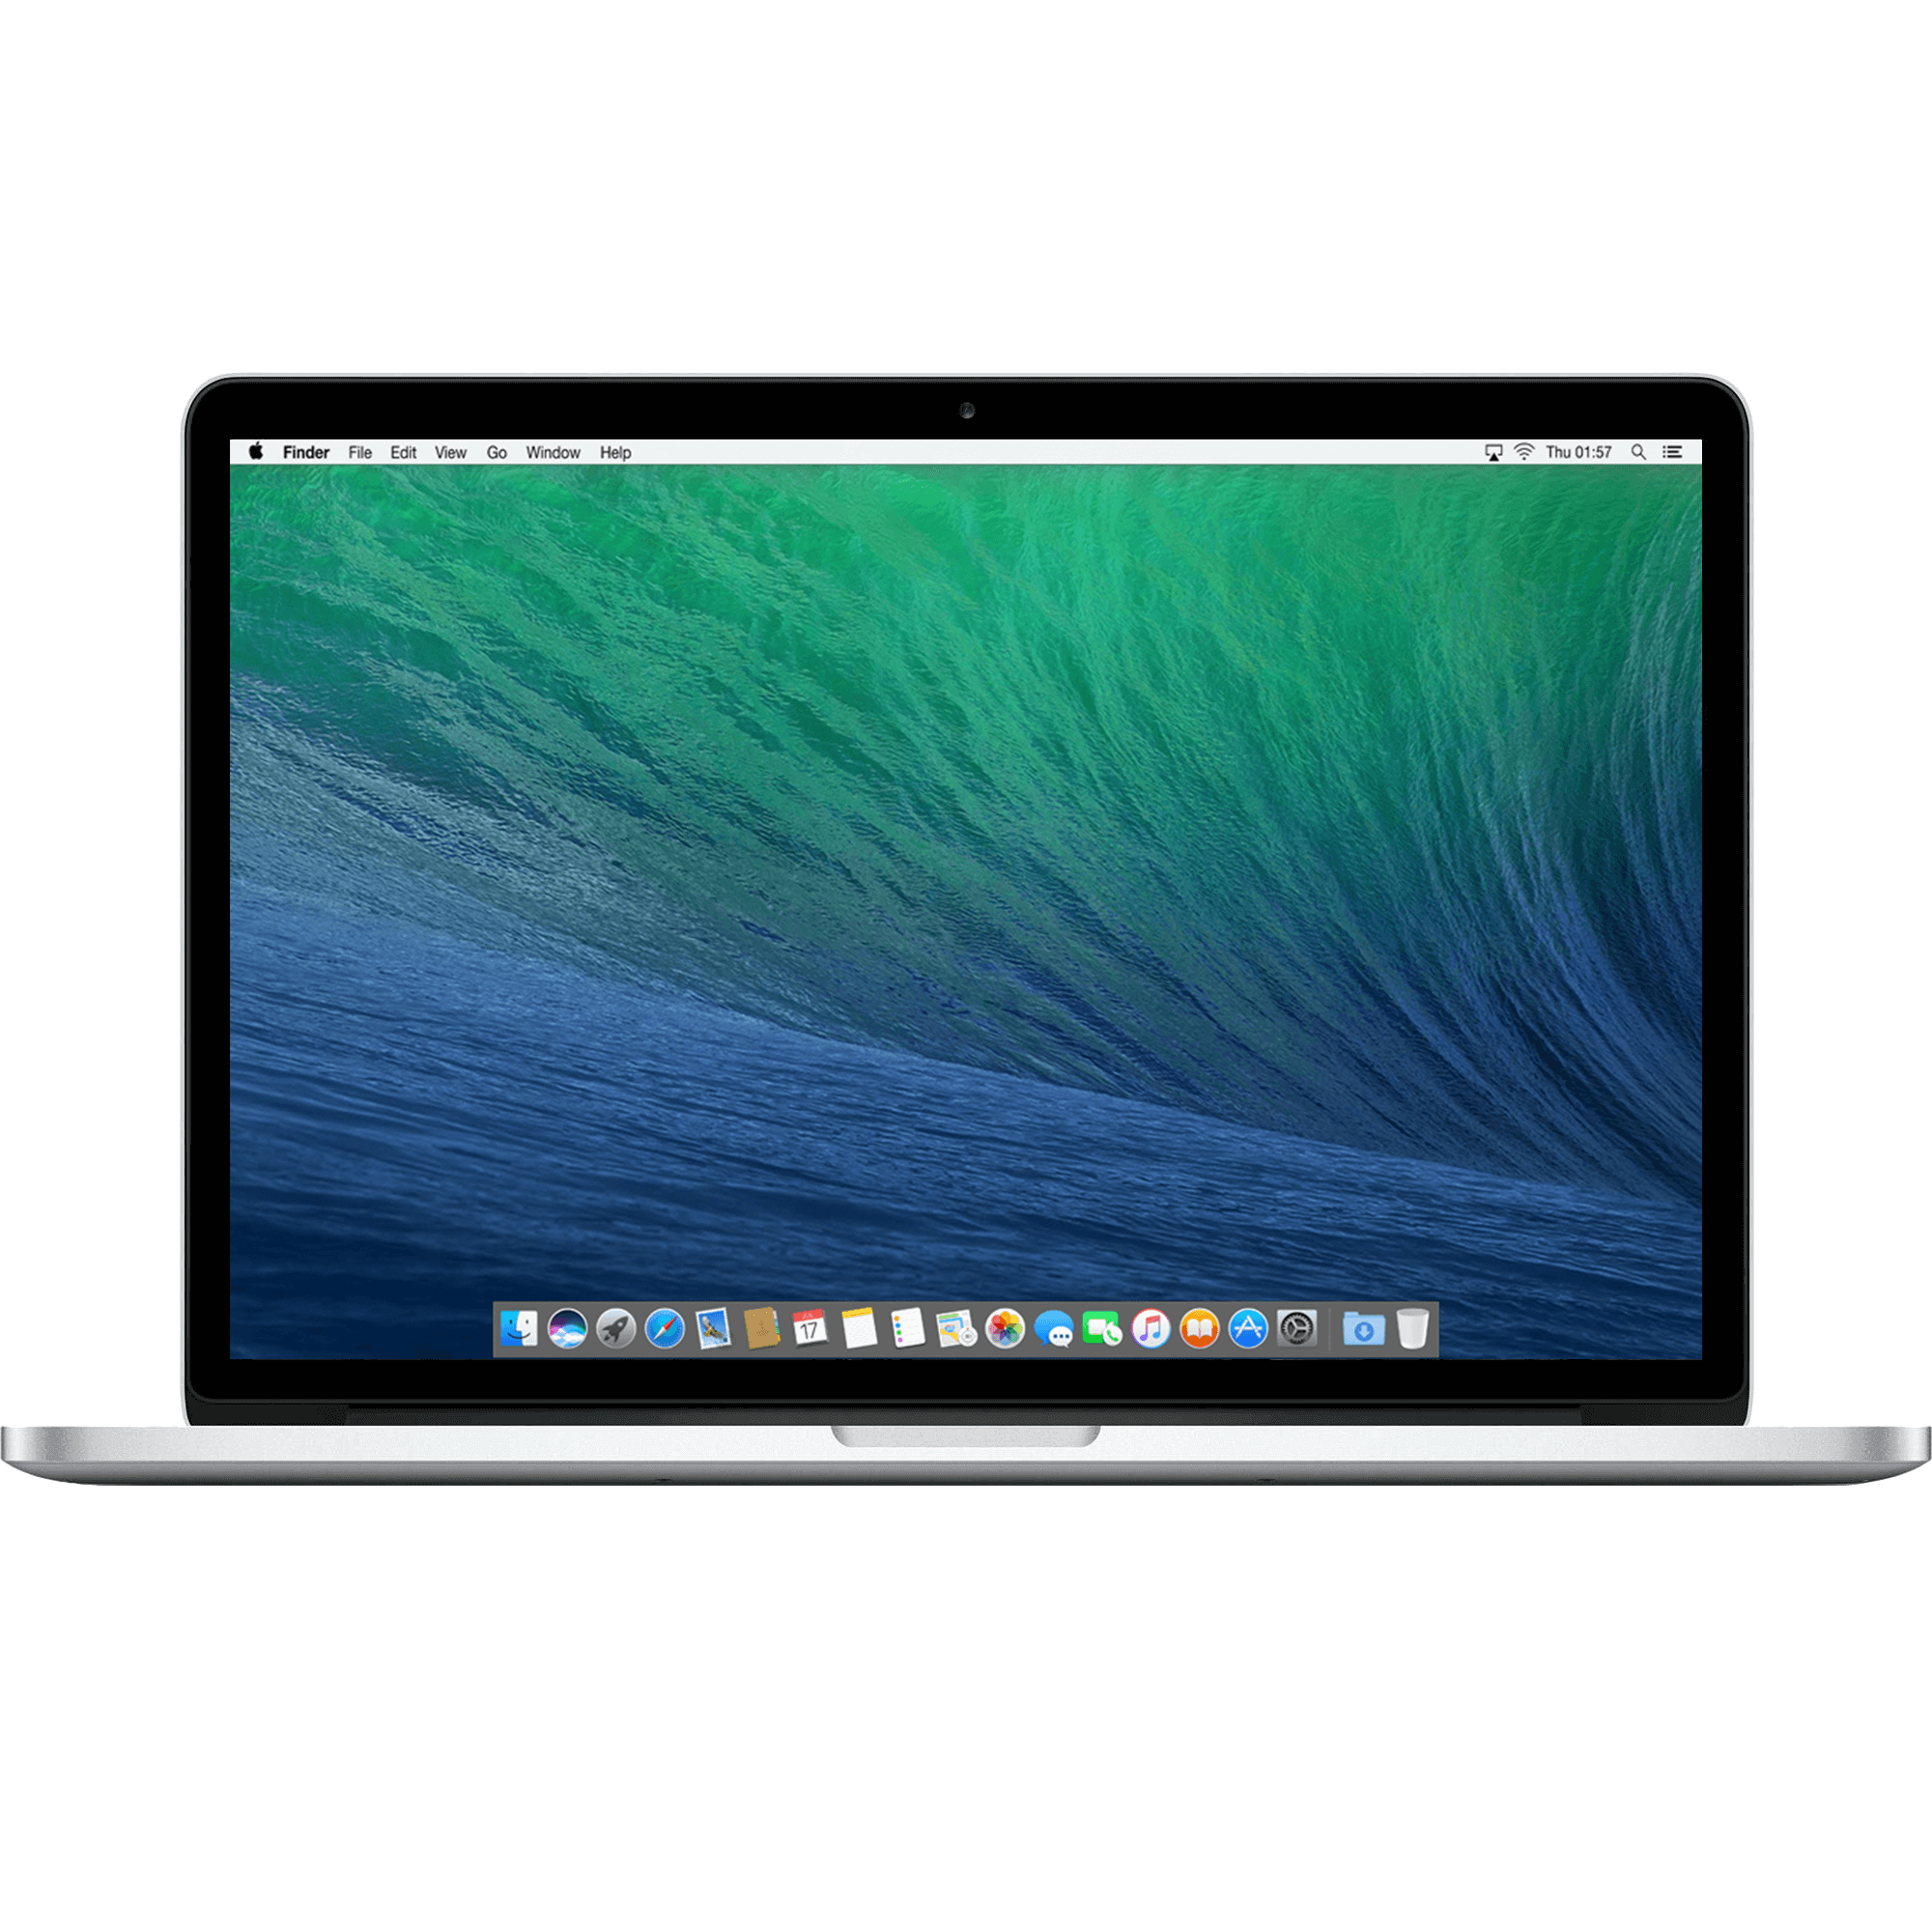 "MacBook Pro Retina 15"" Quad Core i7 2.0 Ghz 8gb 256gb"